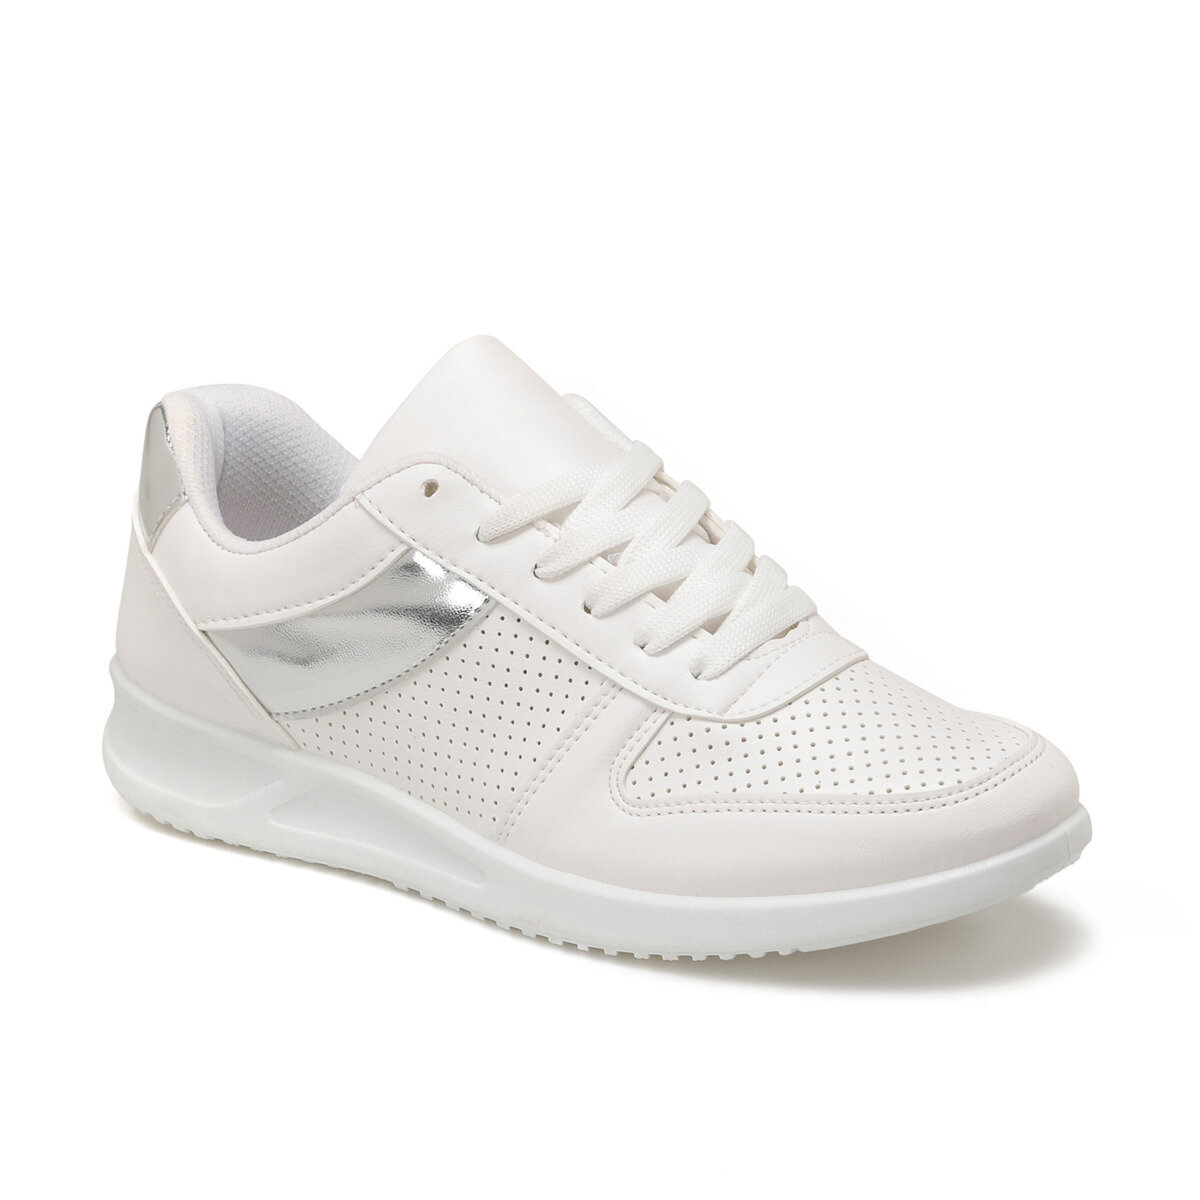 FLO 91. 313390.Z White Women 'S Sports Shoes Polaris